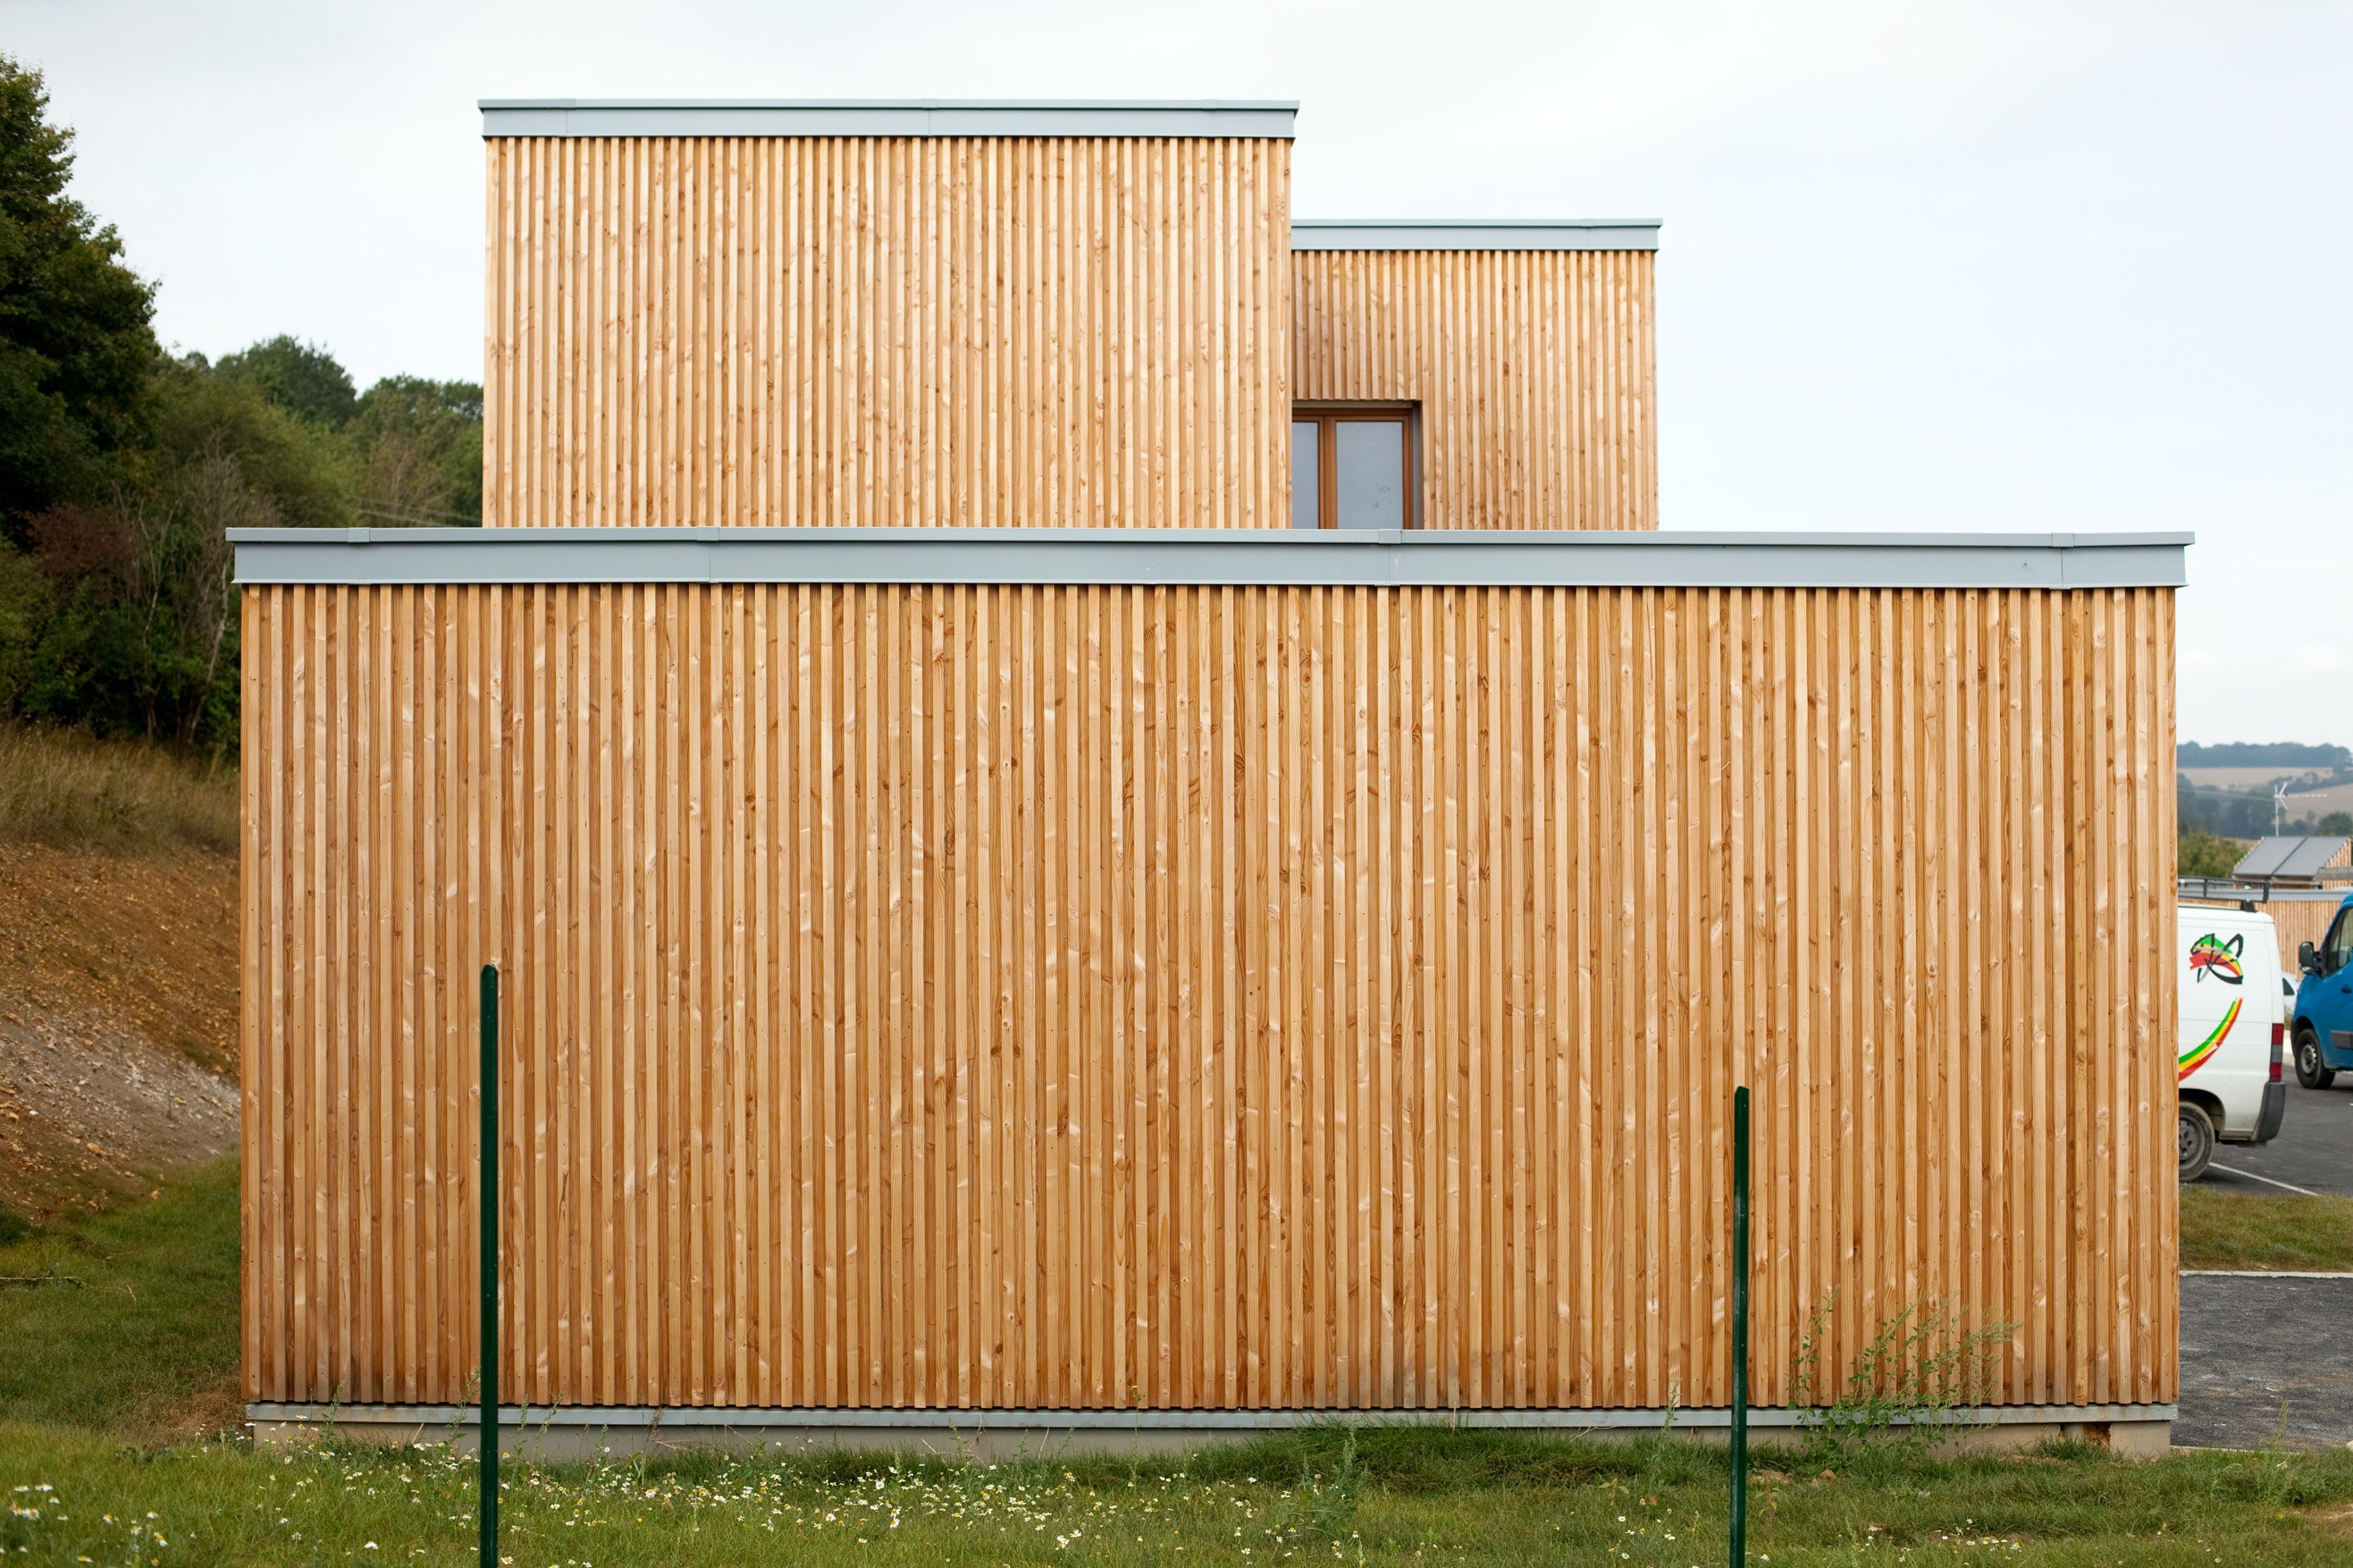 Maison en contenaire good get free high quality hd for Maison container yvelines